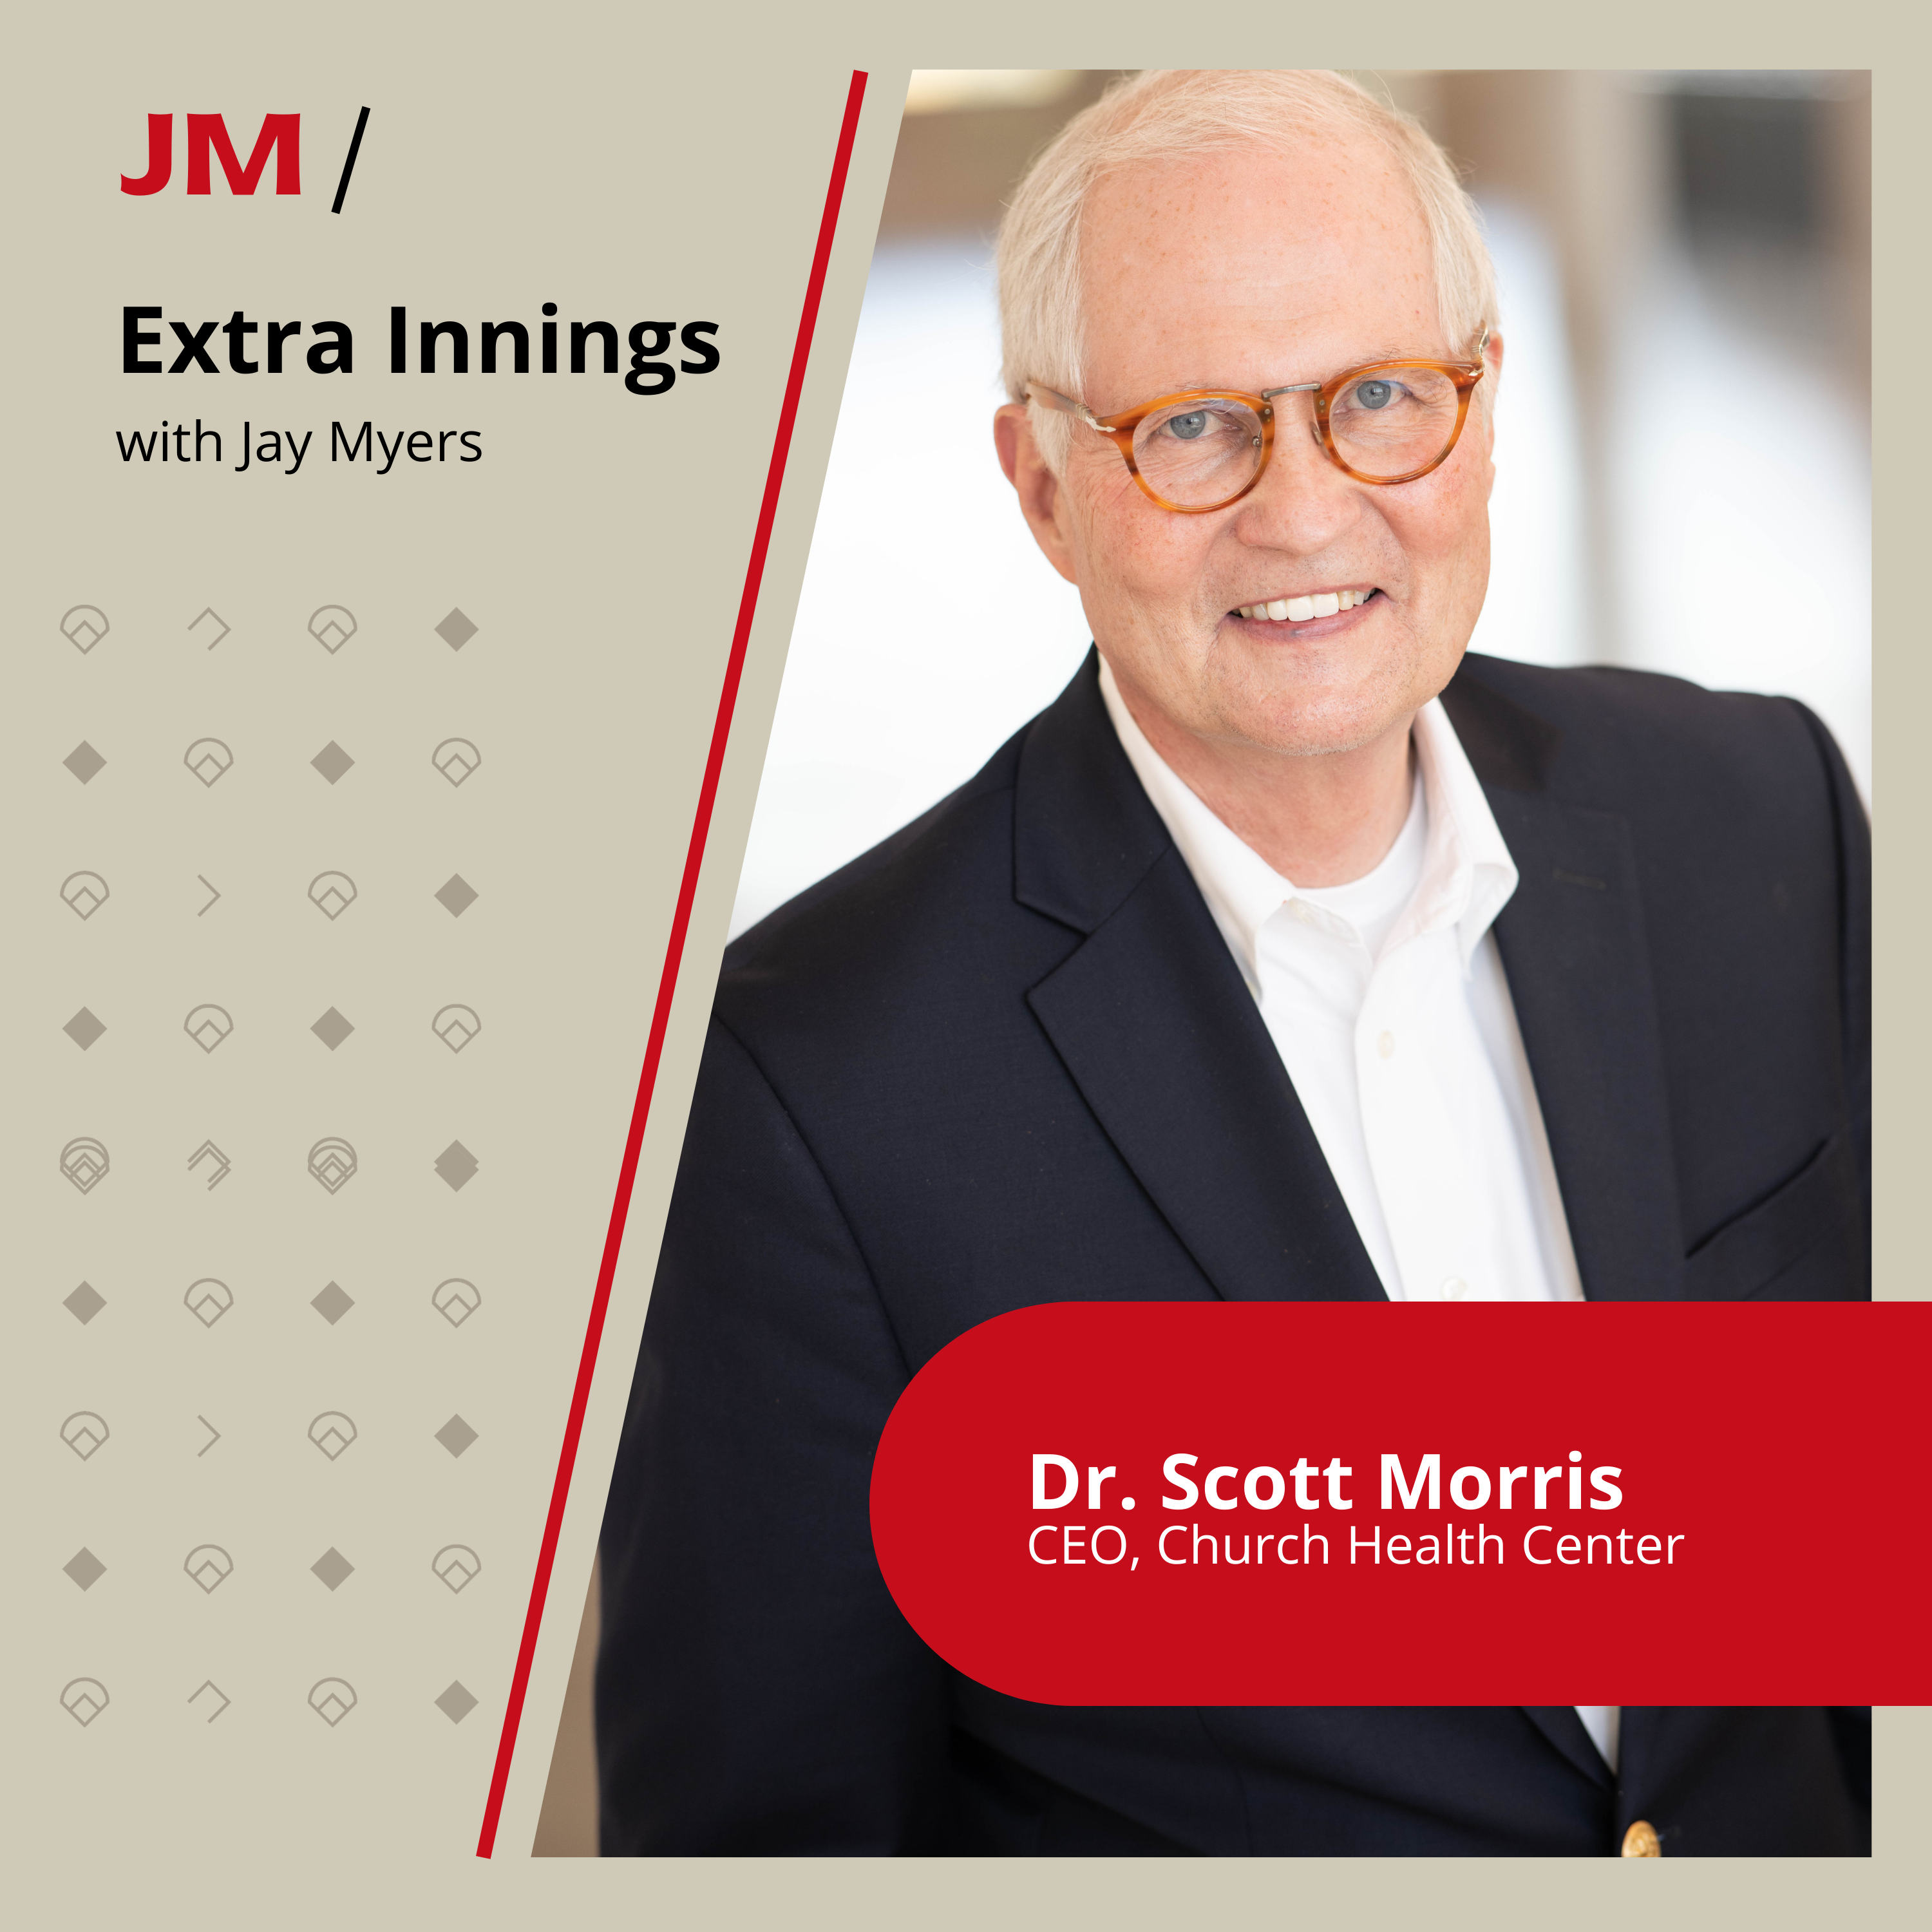 May be an image of 1 person, eyeglasses and text that says 'JM/ Extra Innings with Jay Myers Dr. Scott Morris CEO, Church Health Center'